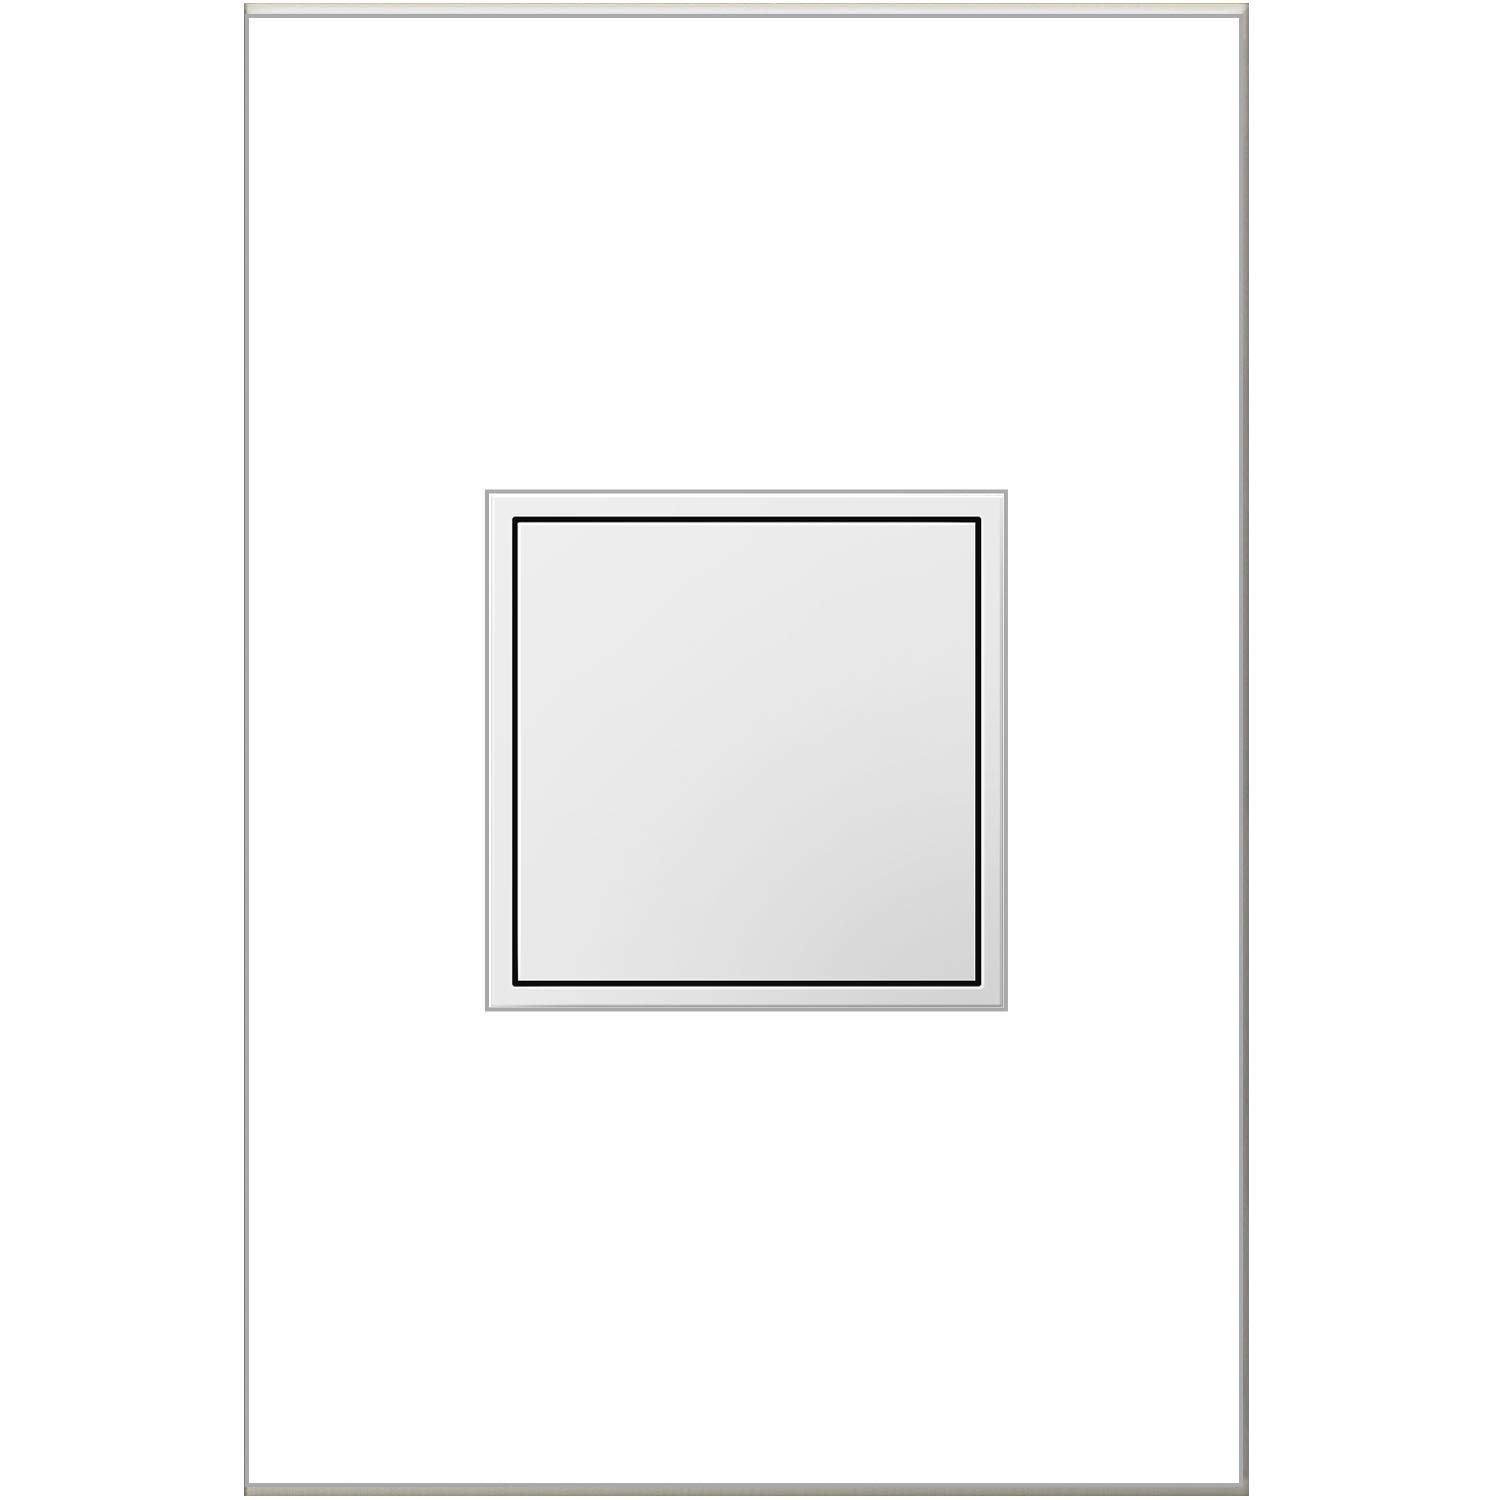 Legrand adorne 1-Gang Pop-Out Outlet in White With Matching Wall Plate, ARPTR151GW2WP by adorne